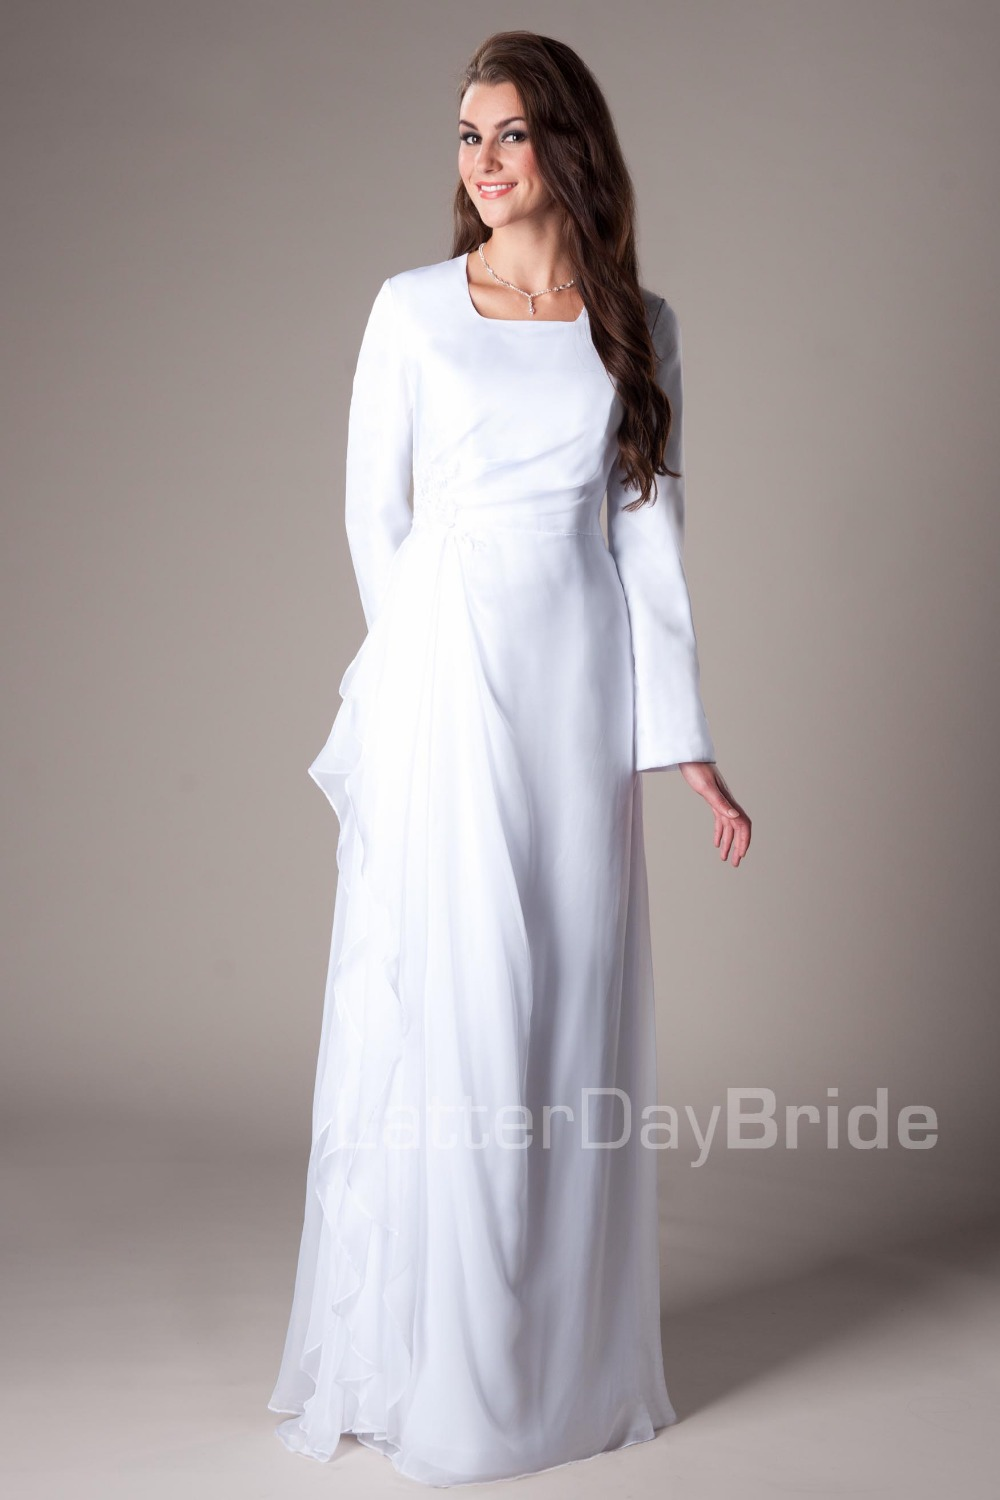 Turmec » long sleeve full length white dress